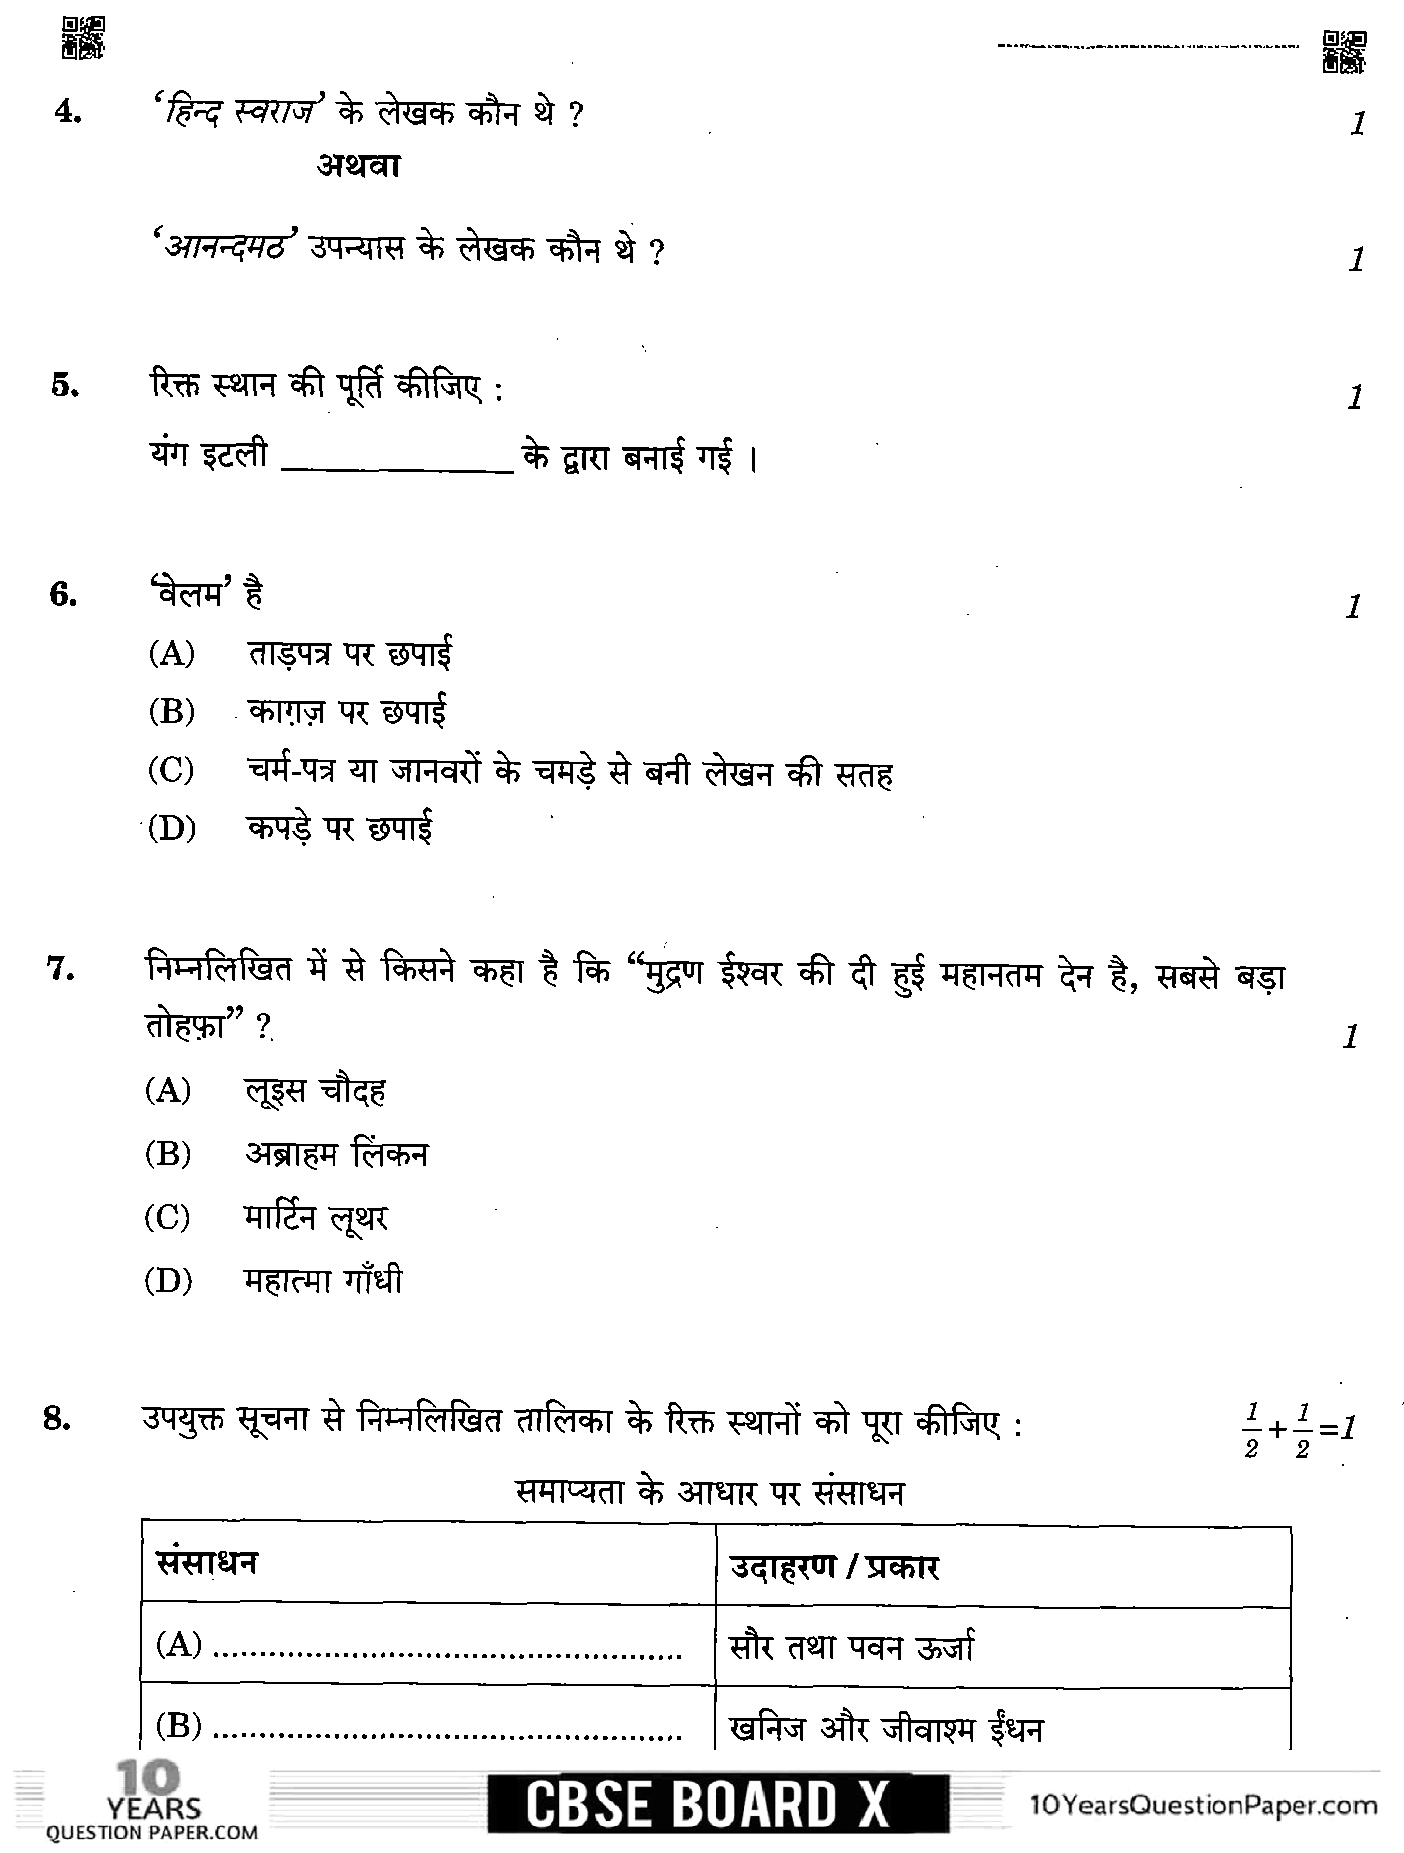 CBSE Class 10 Social Science 2020 Question Paper